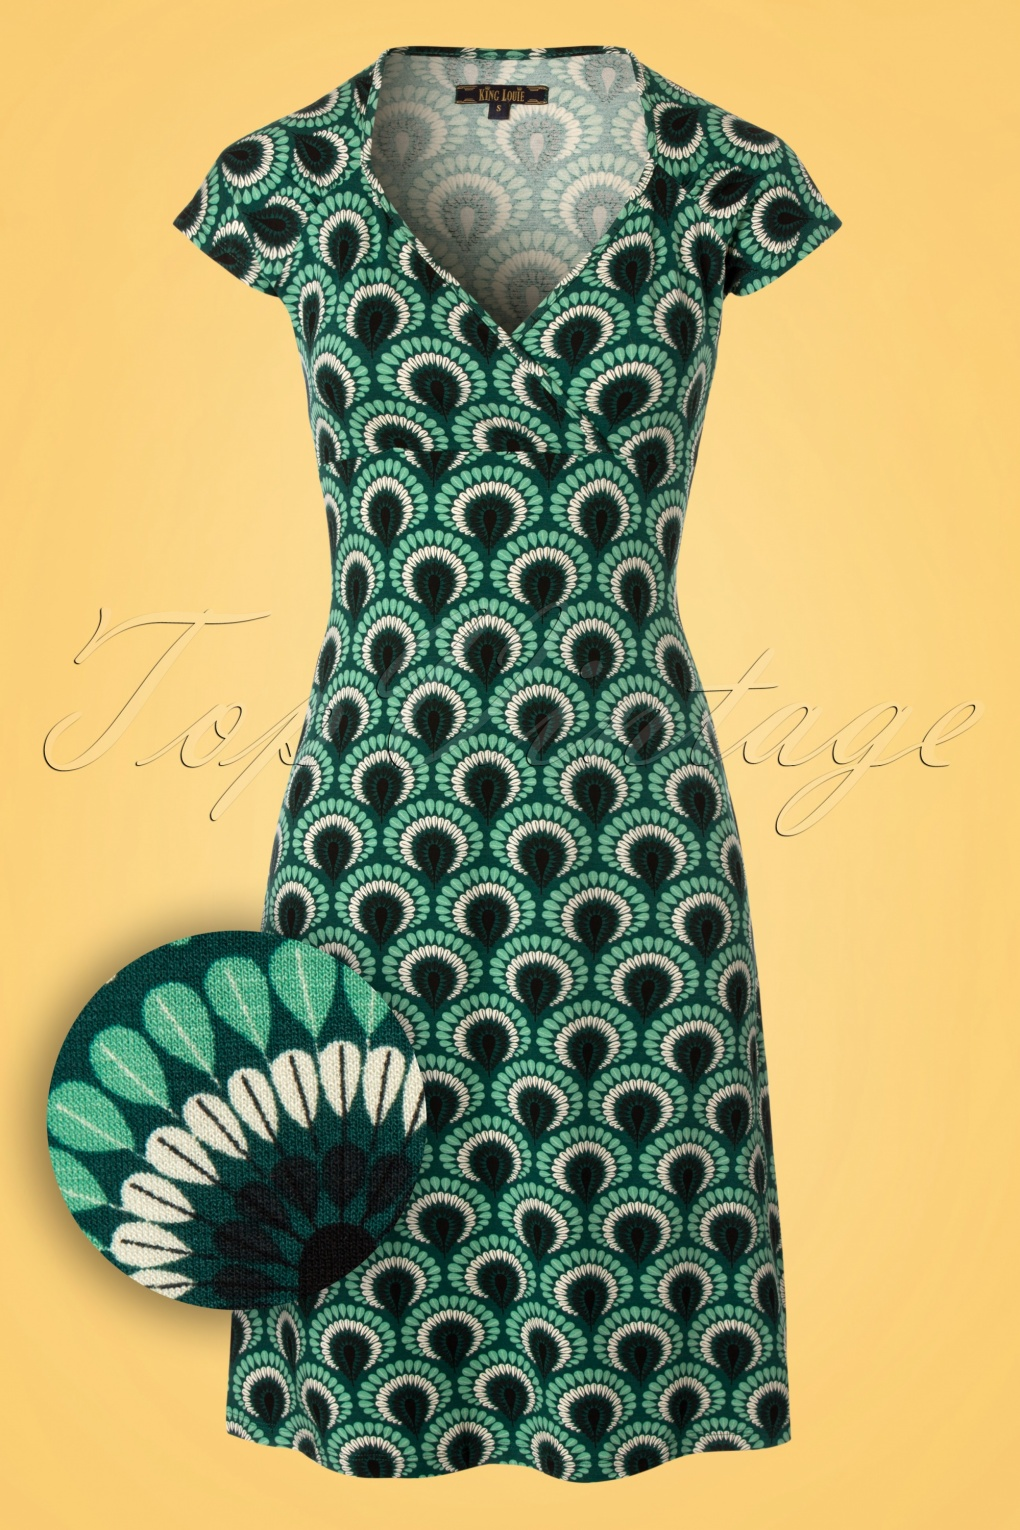 1960s Mad Men Dresses and Clothing Styles 60s Gina Peacock Dress in Rock Green £84.10 AT vintagedancer.com